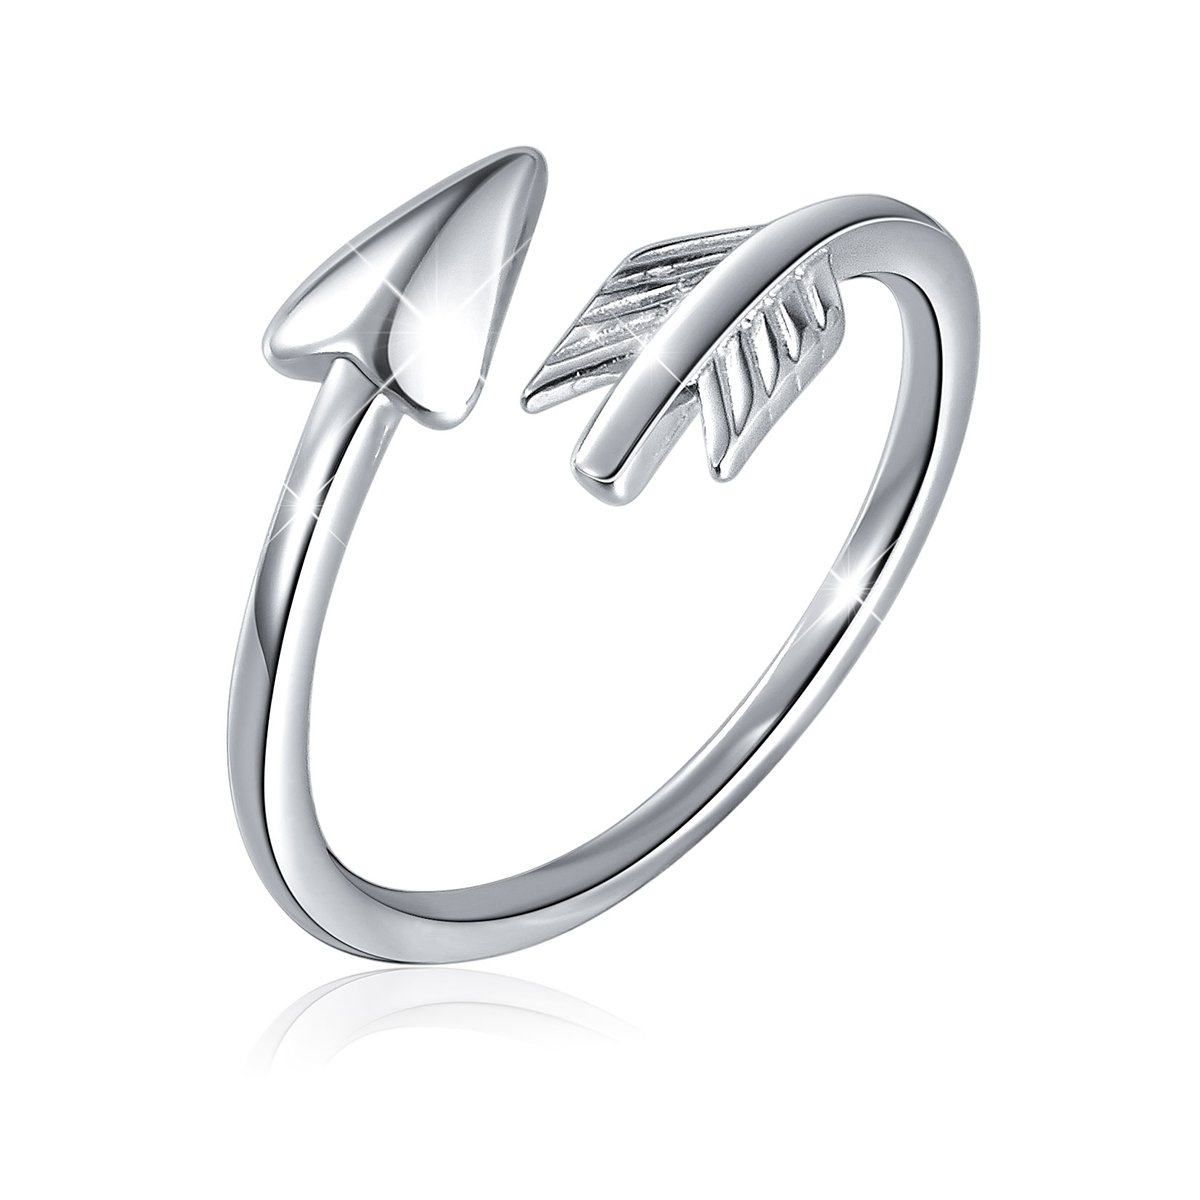 SILVER MOUNTAIN S925 Sterling Silver Classic Love Polished Sideways Arrow Horizontal Ring for Women